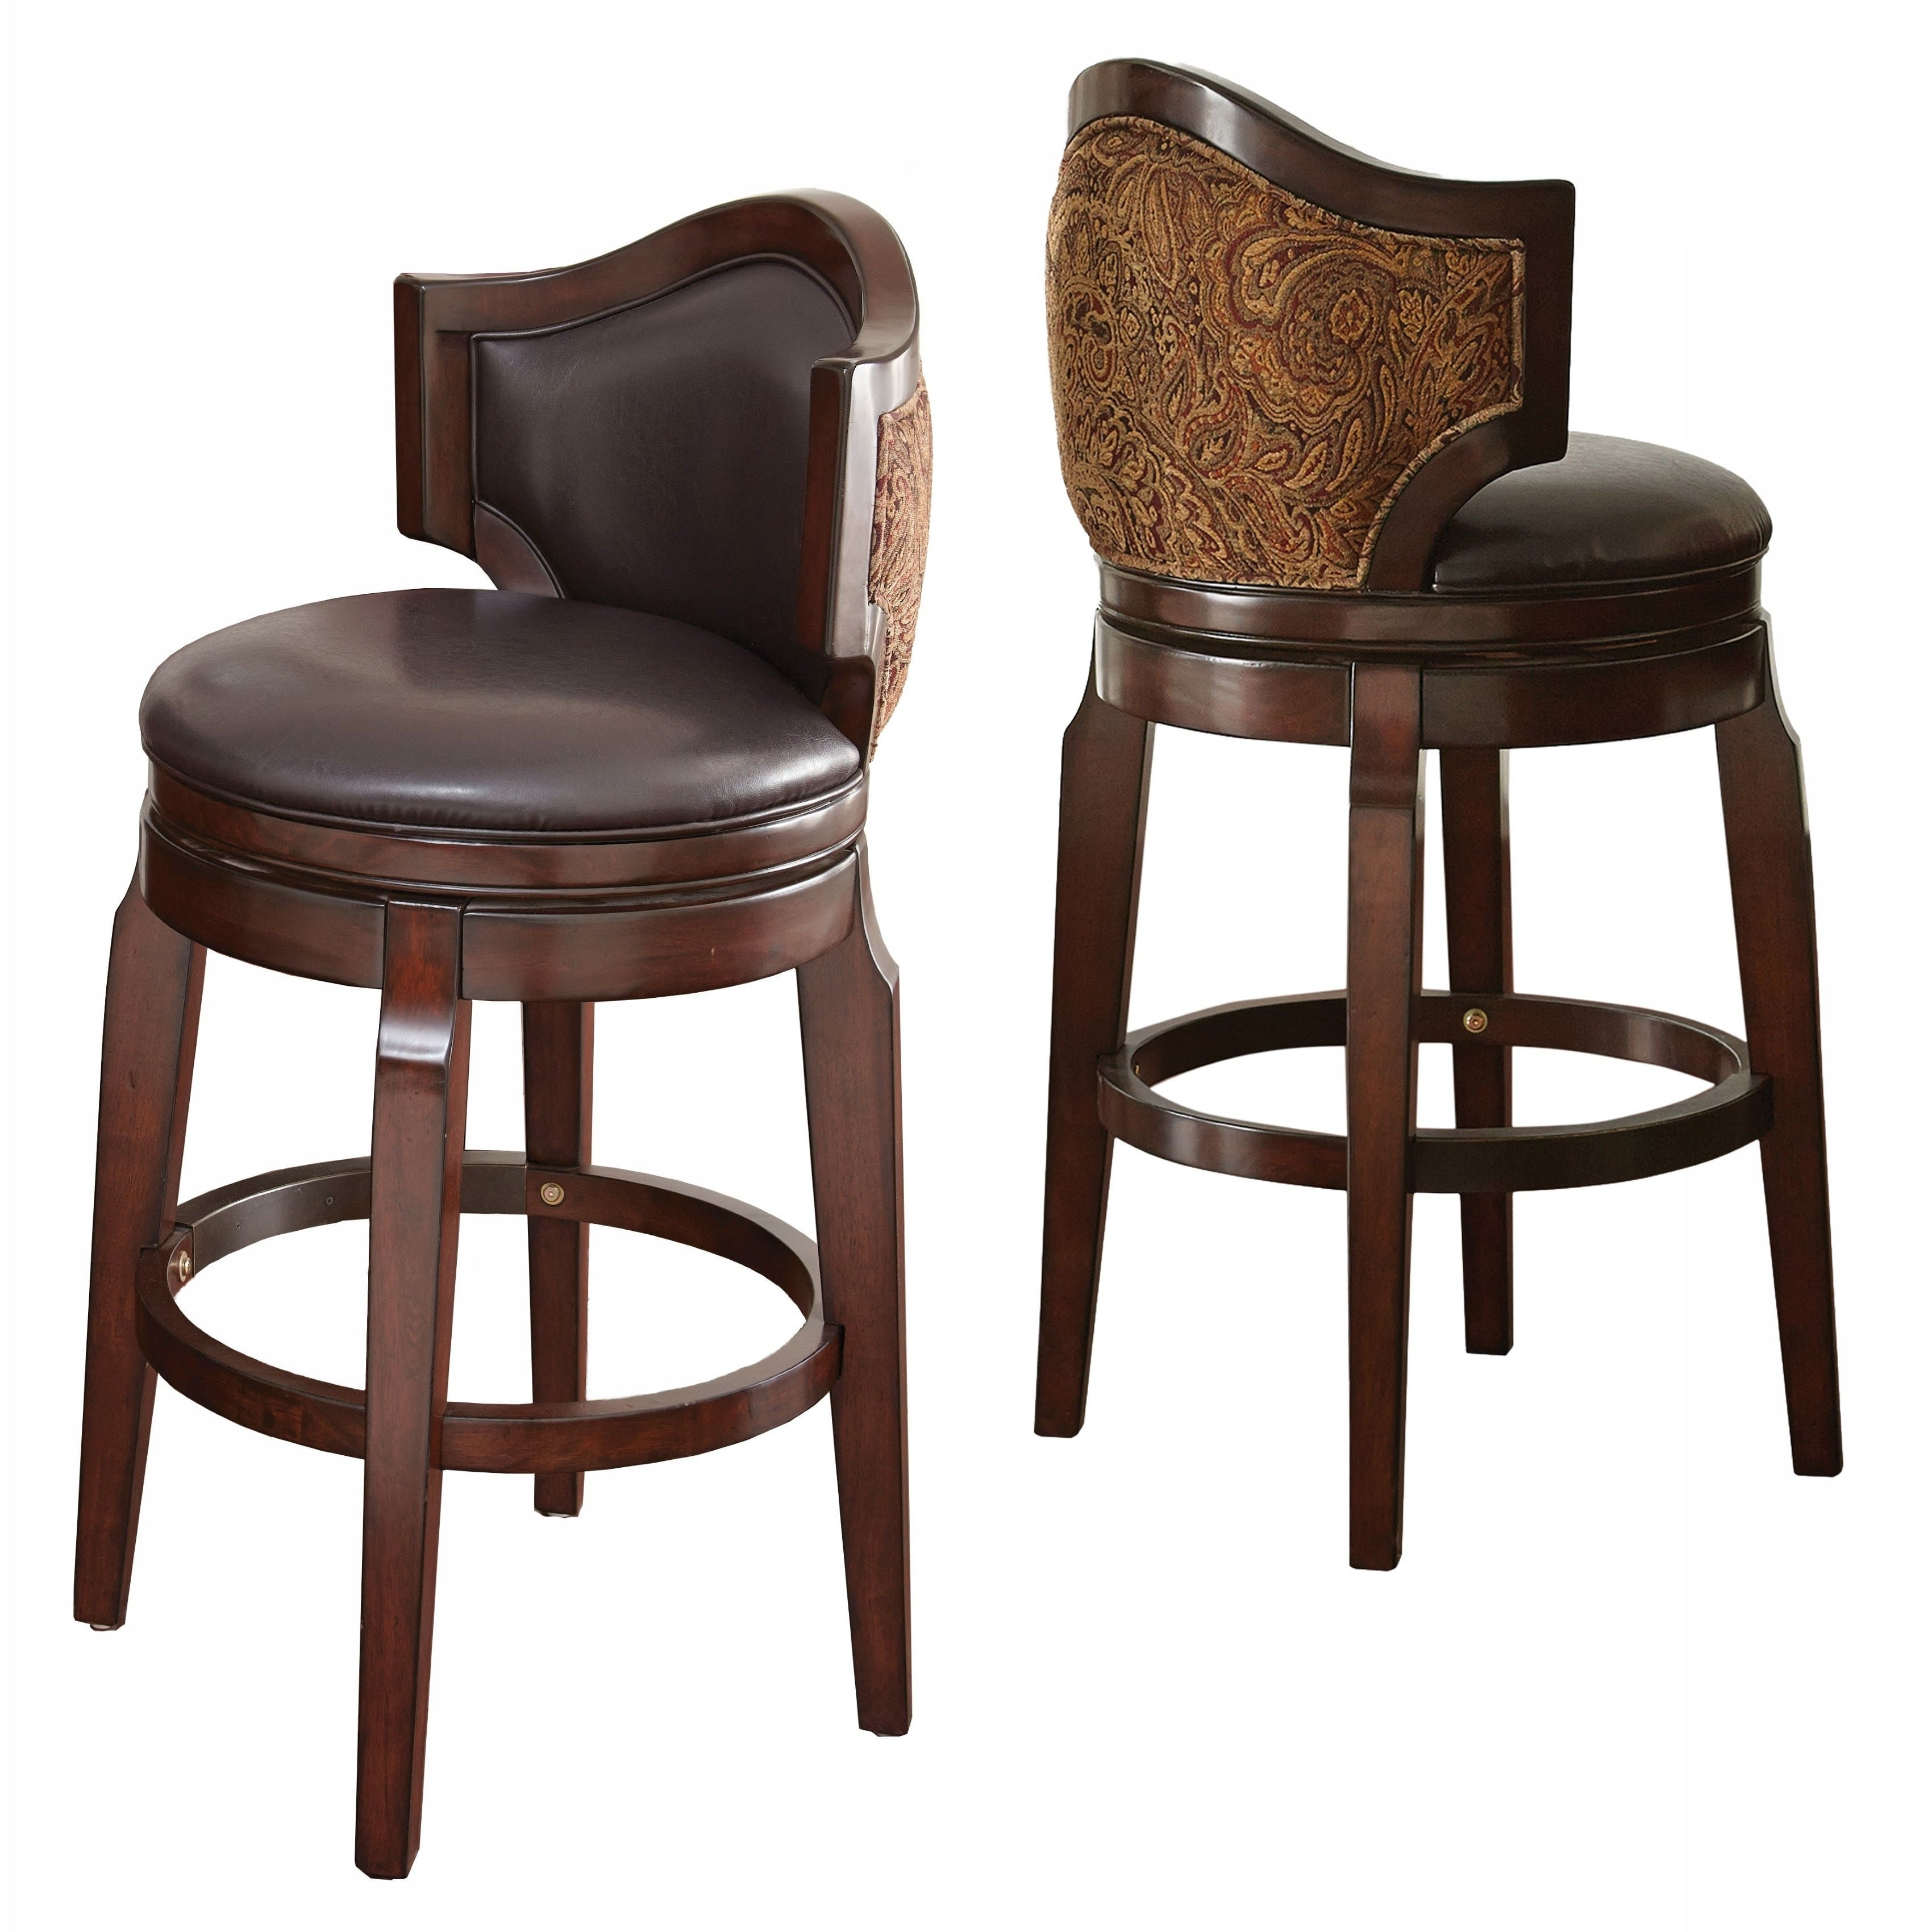 Our Best Dining Room Bar Furniture Deals Bar Stools Low Back Bar Stools Bar Chairs